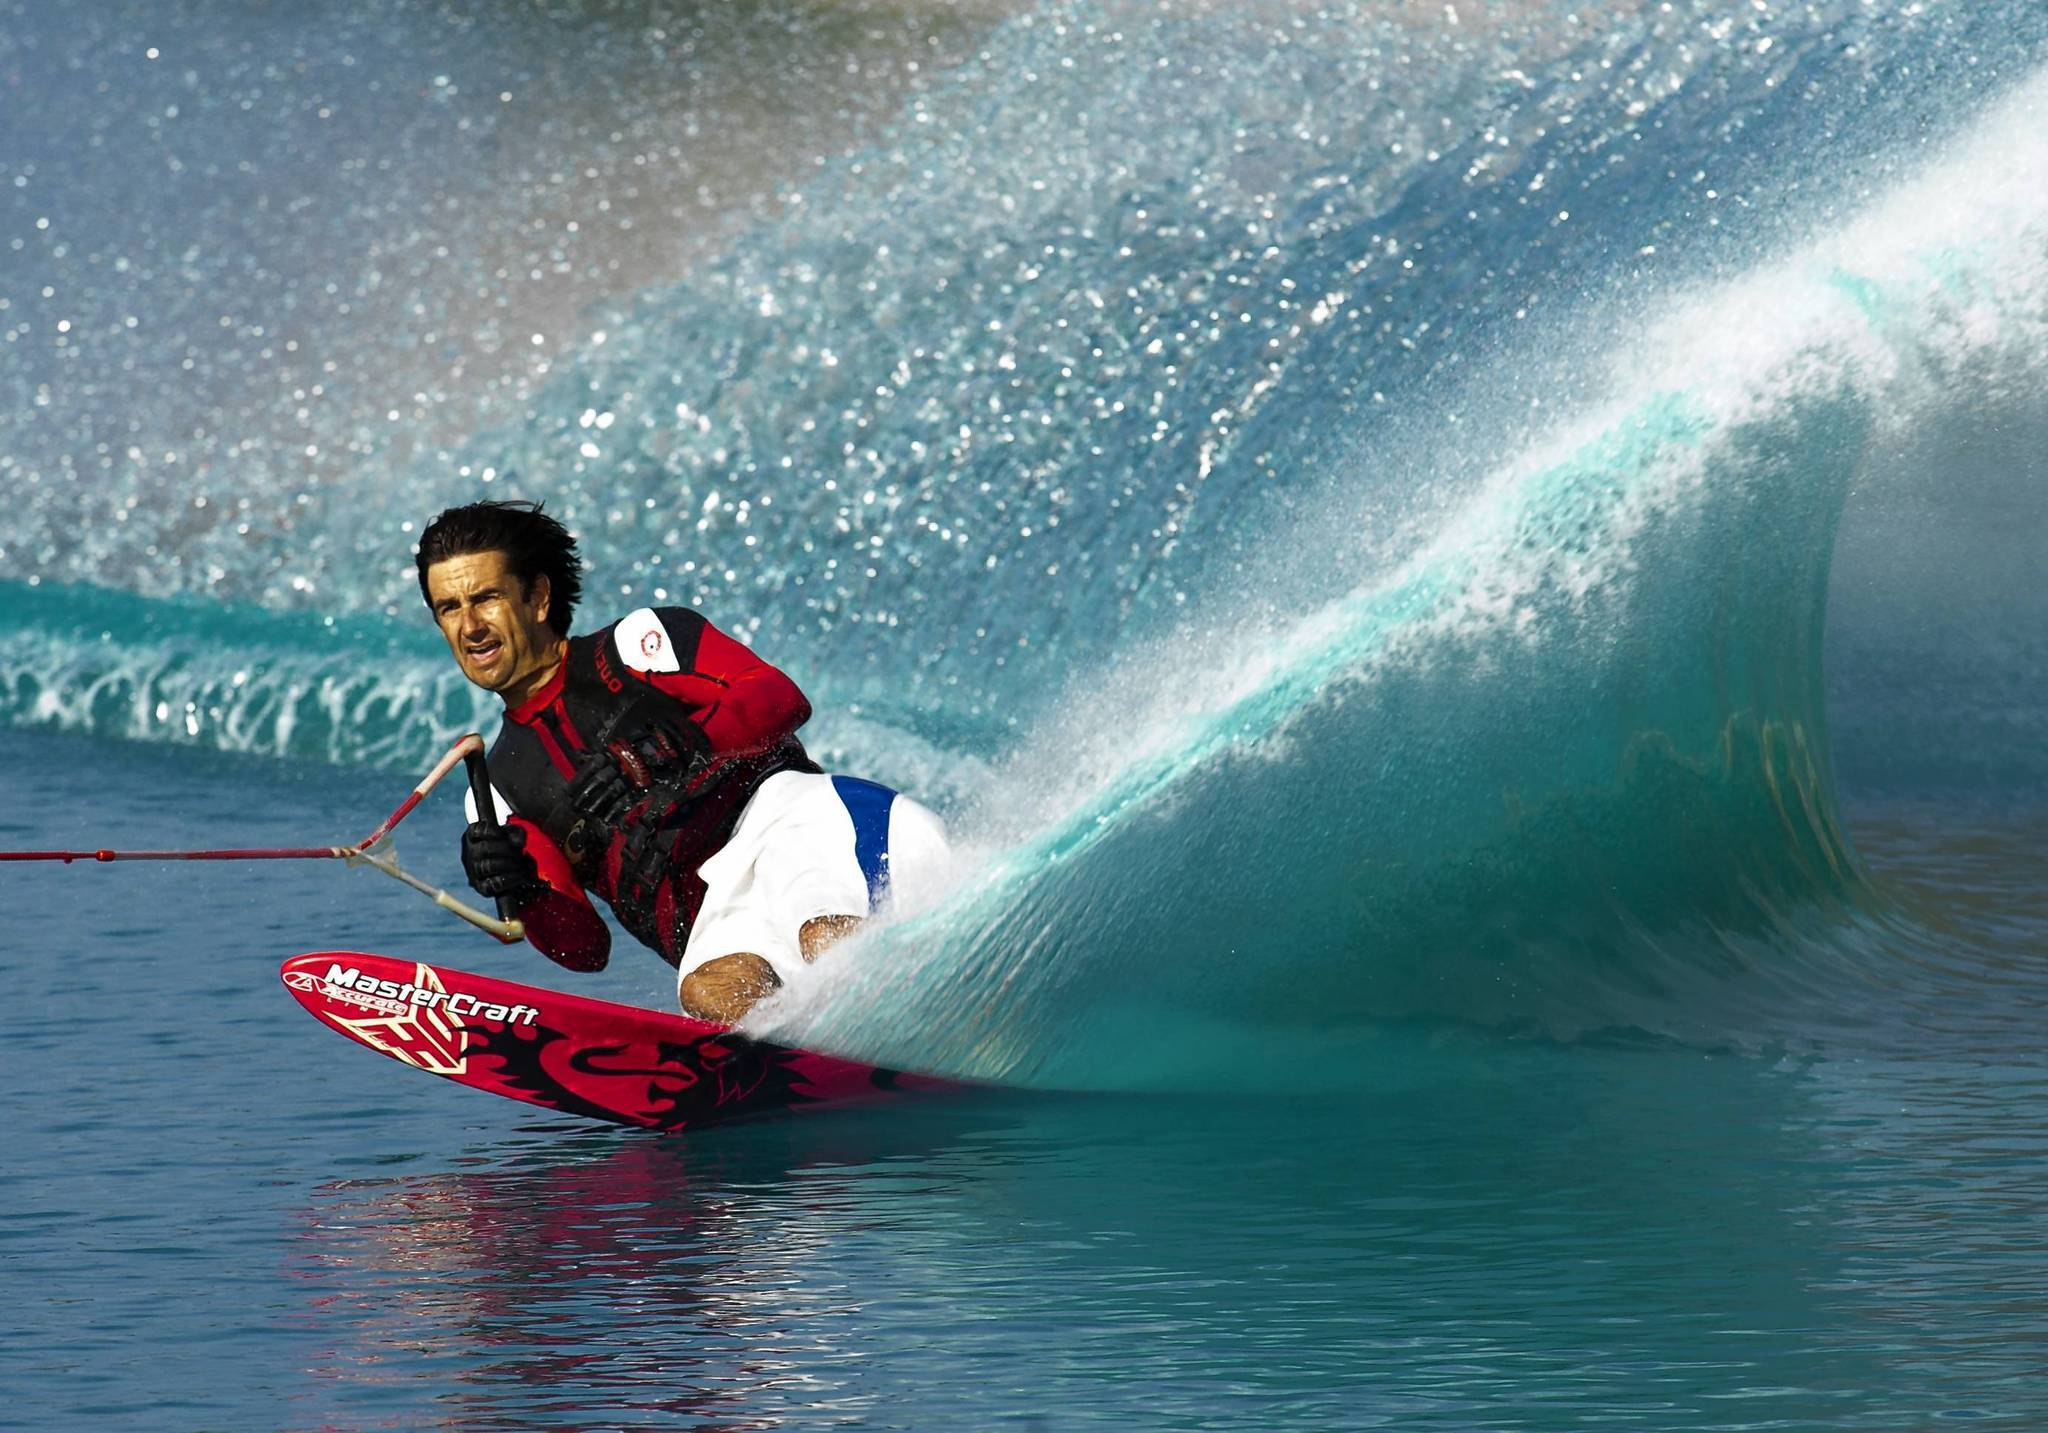 Water skier Wade Cox has been inducted into the Water Ski Hall of Fame.